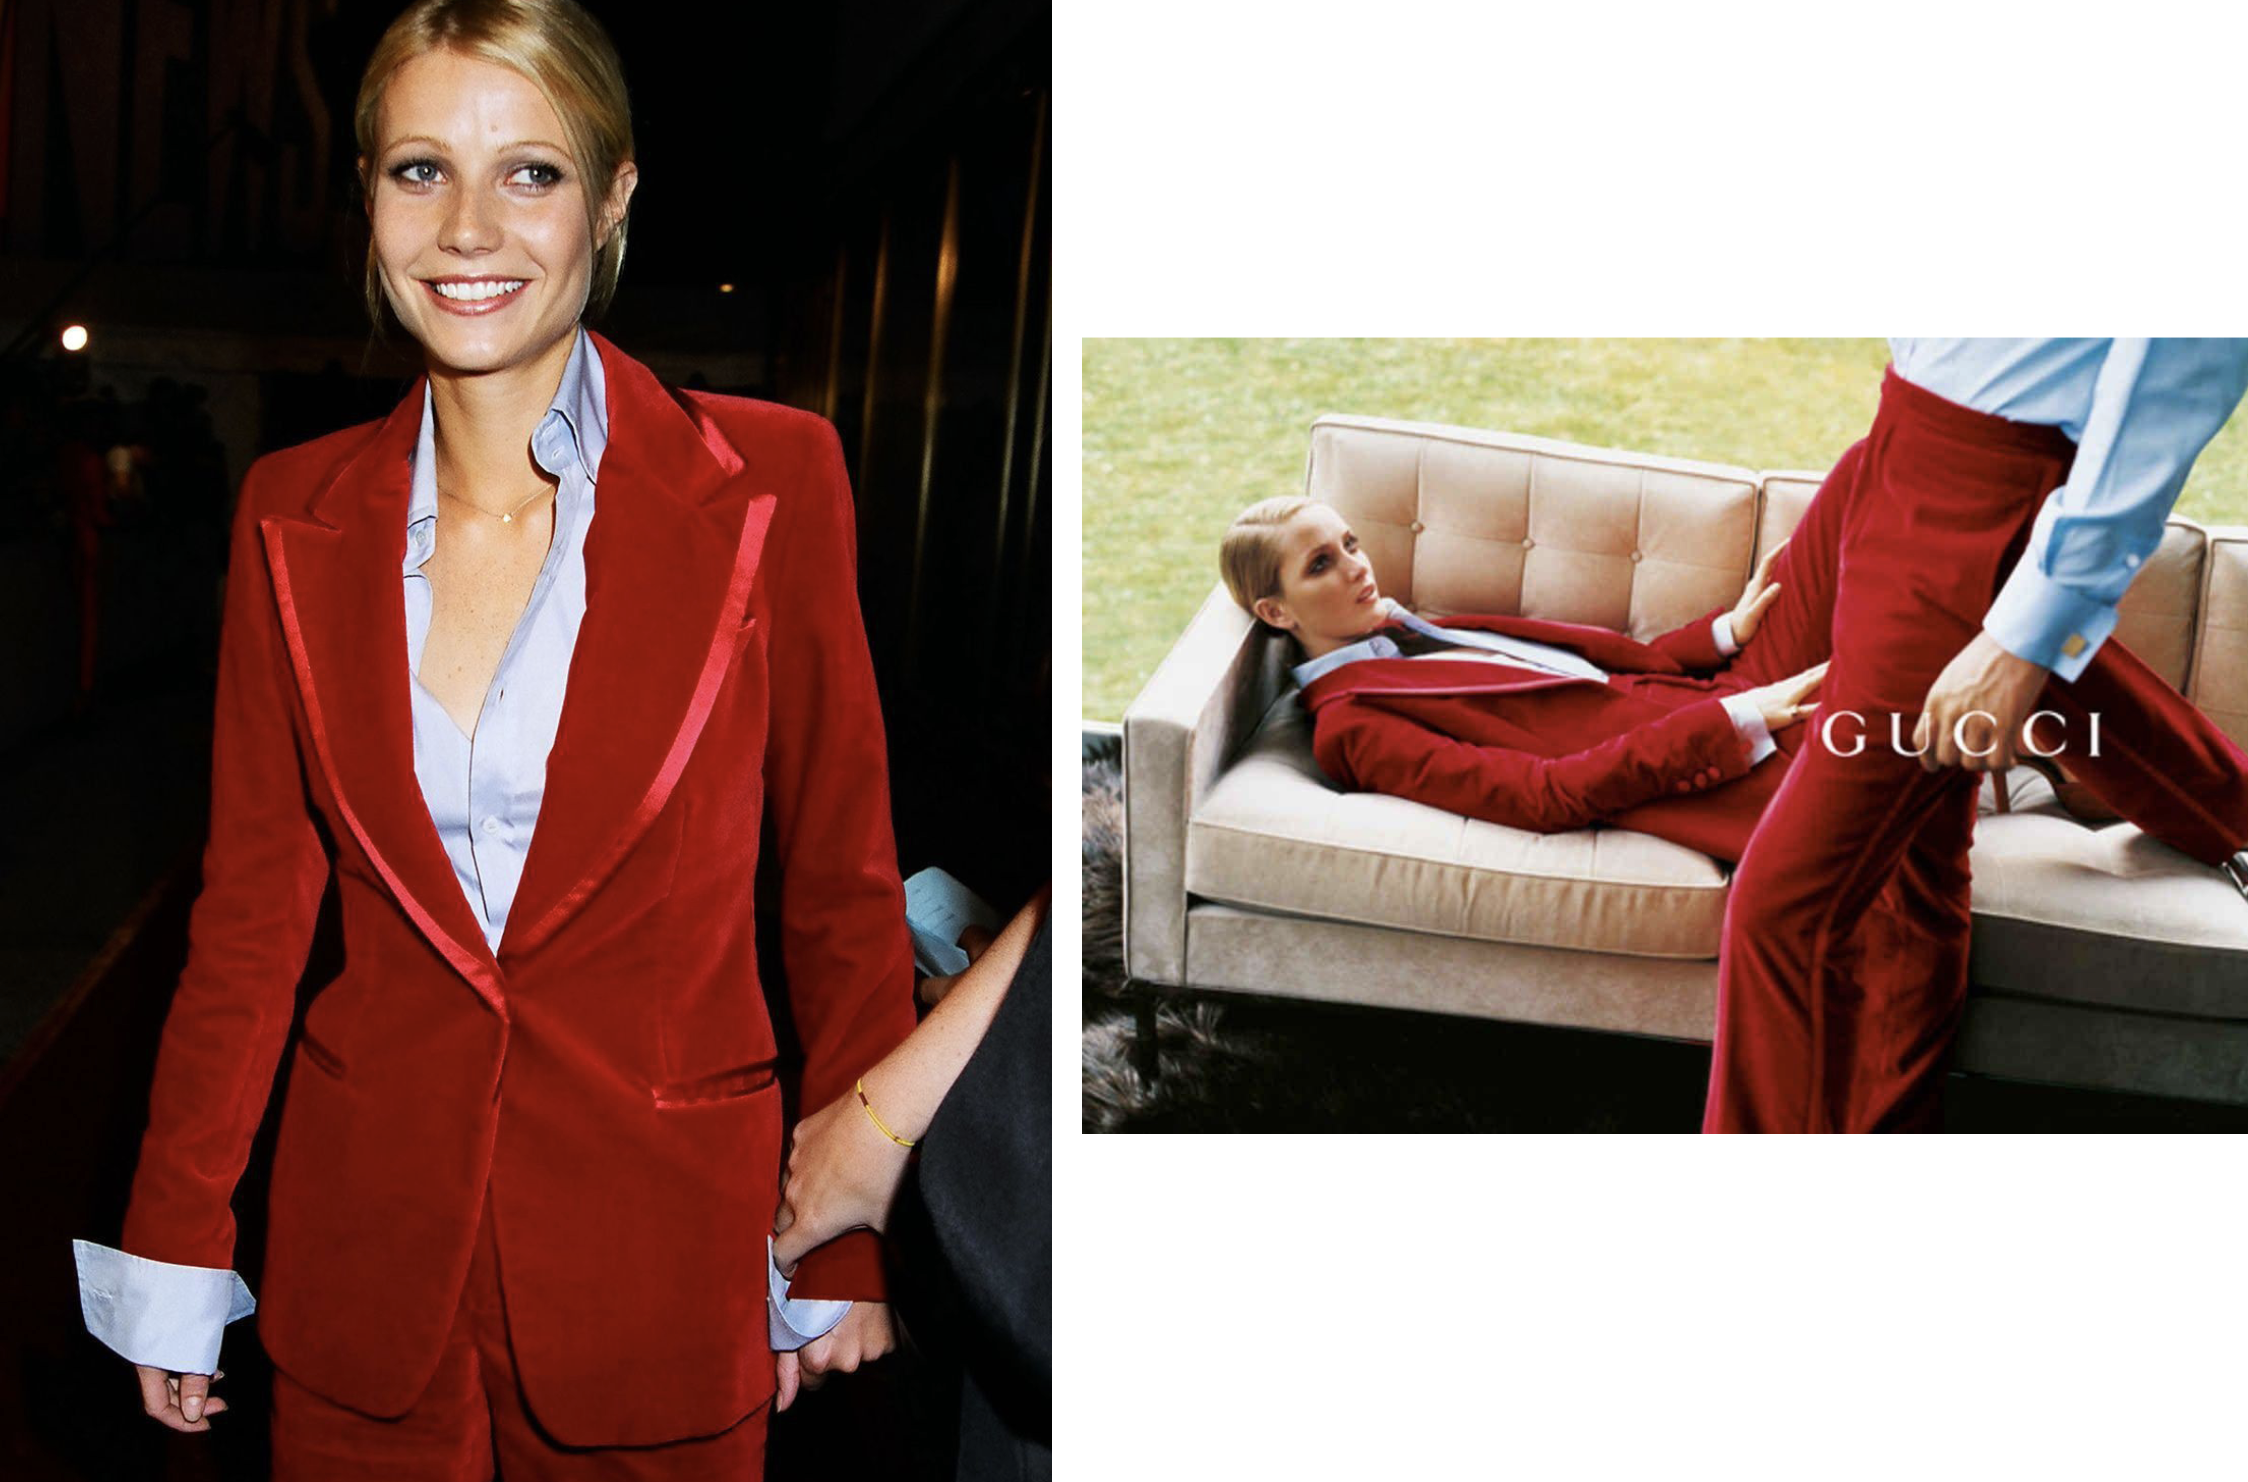 """How can I beat that?"" Gwyneth Paltrow on the Gucci by Tom Ford red velvet suit she wore to the 1996 VMAs. With powerful tailoring and bold colours, the look has become one of the most iconic red-carpet moments and Tom Ford's all-time favorite pieces."